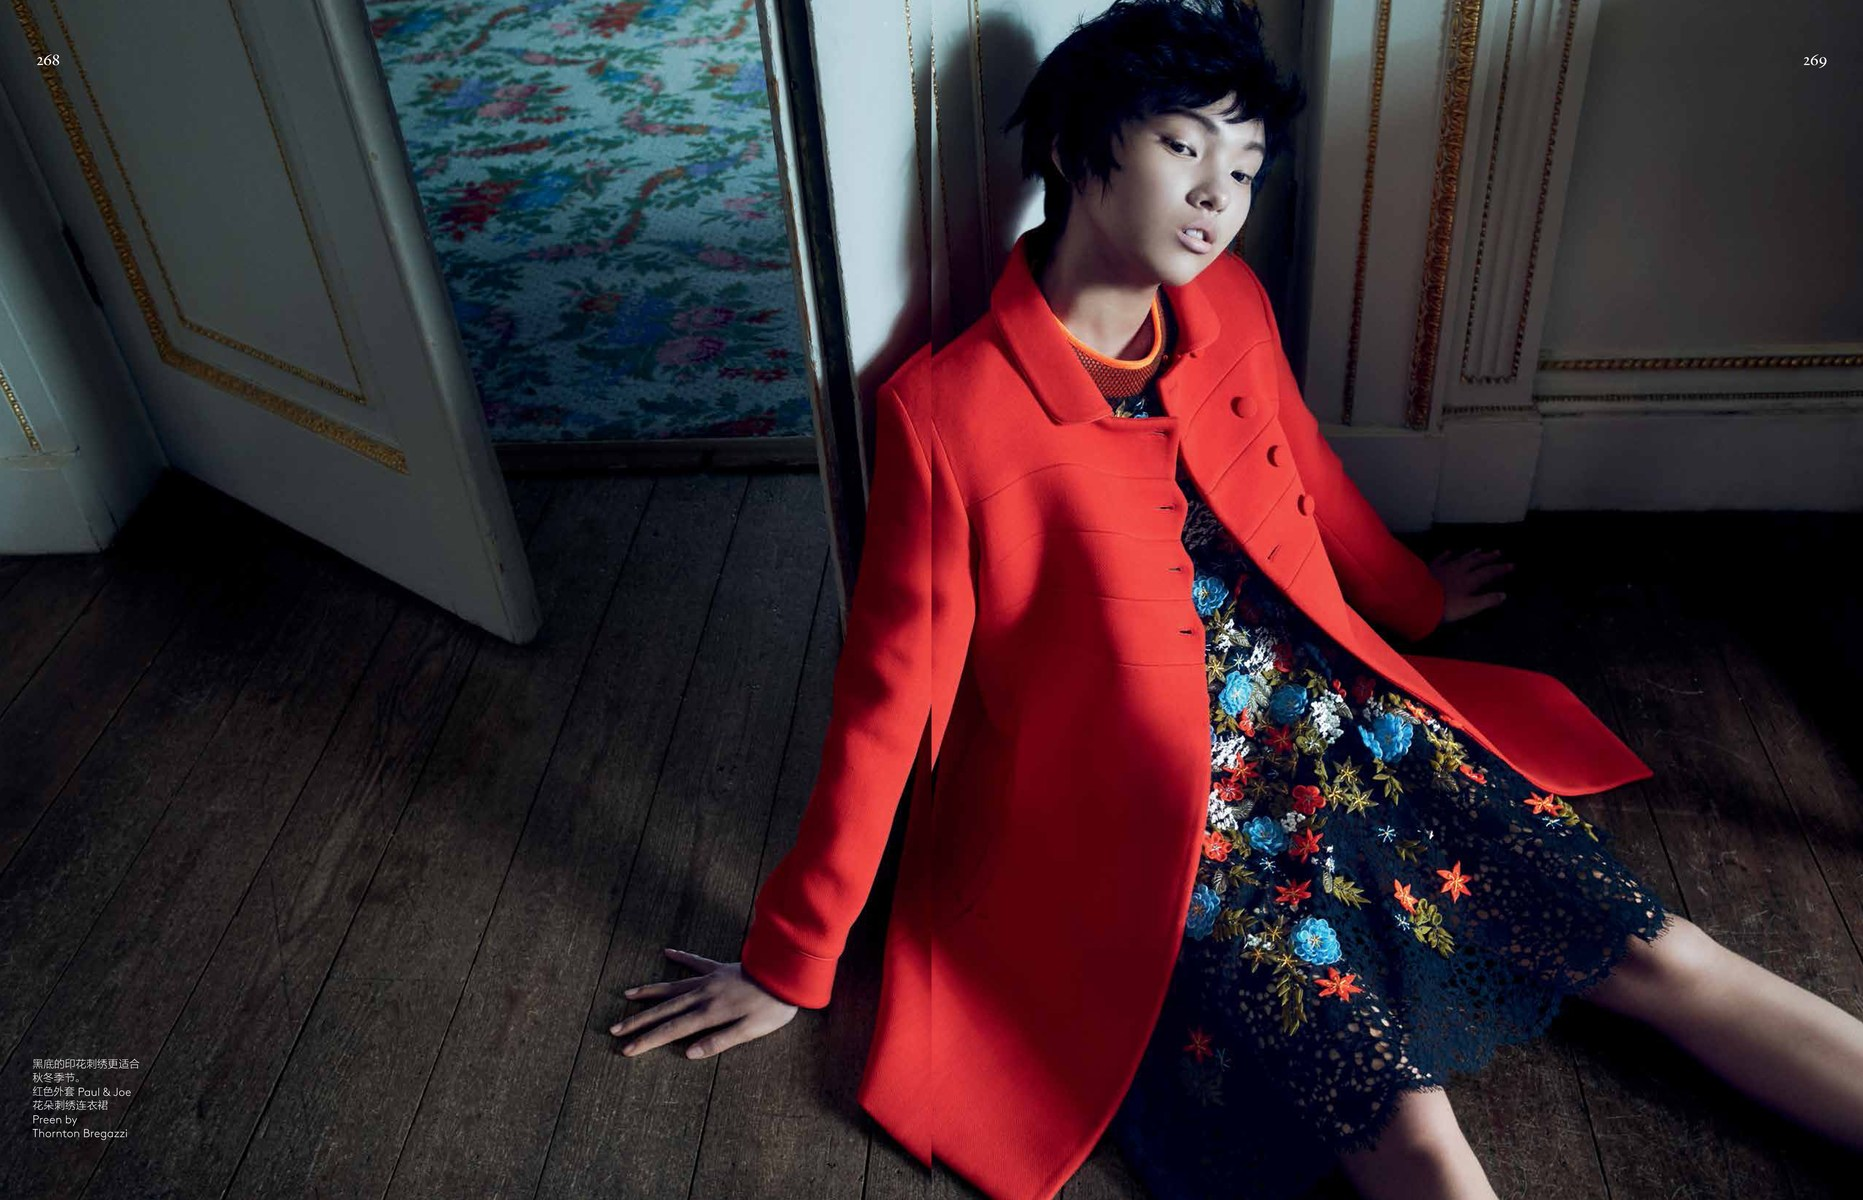 catherine_kasterine_vogue_china_3.jpg